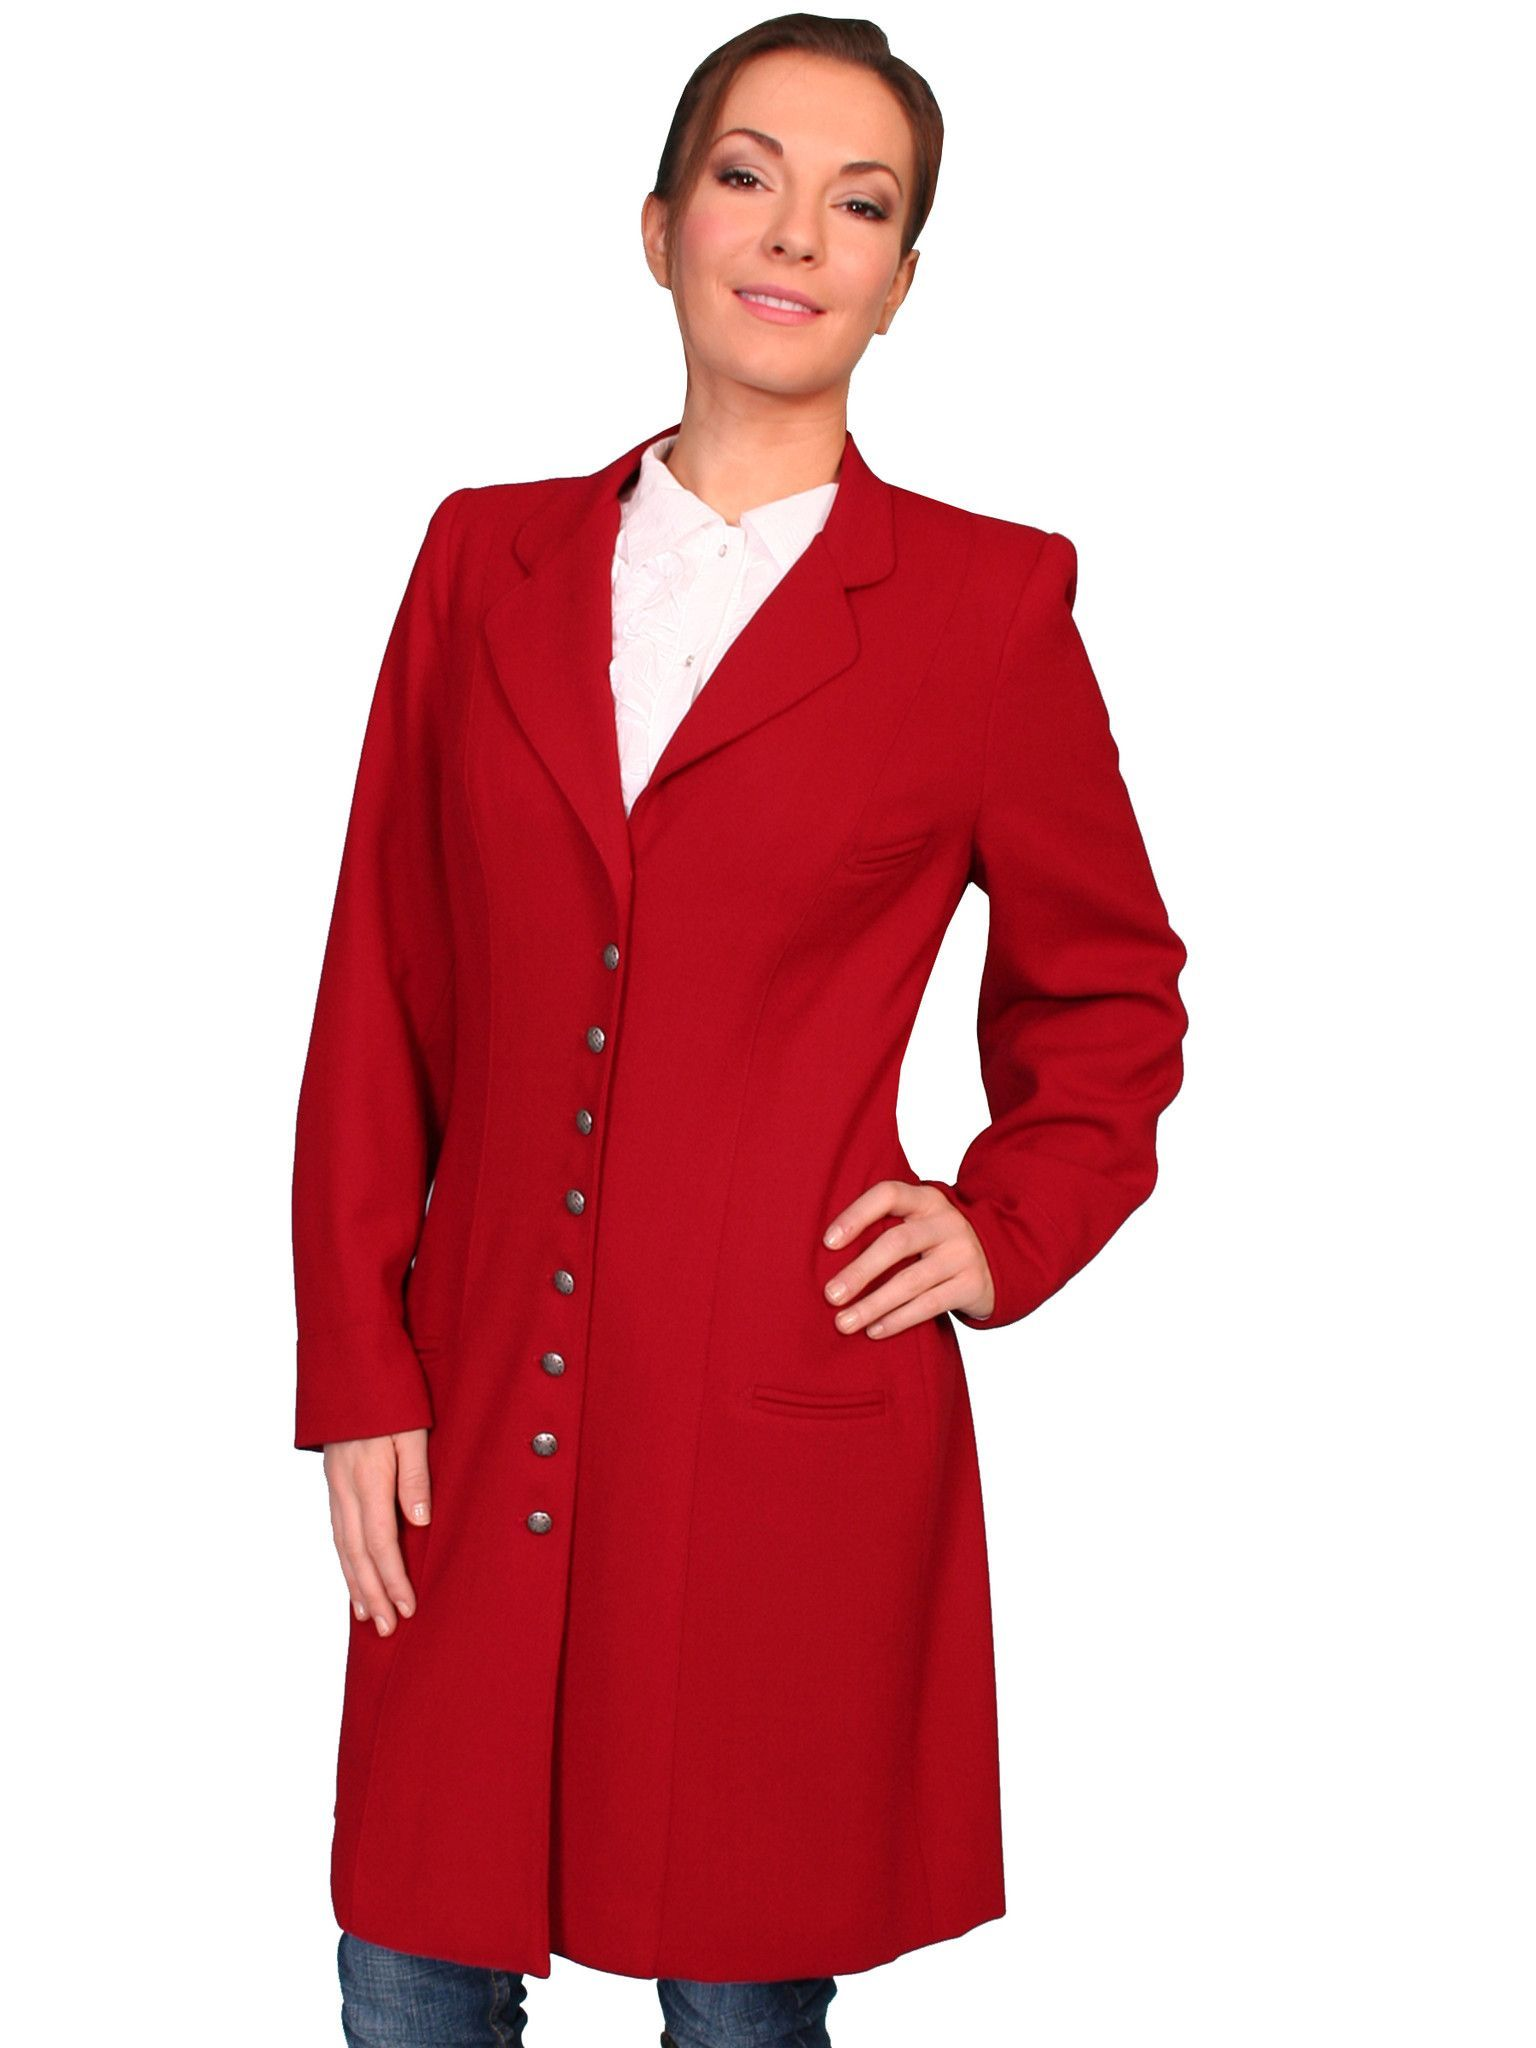 63033411678 Looking for a great jacket that's hip, classic, and vintage? This is a